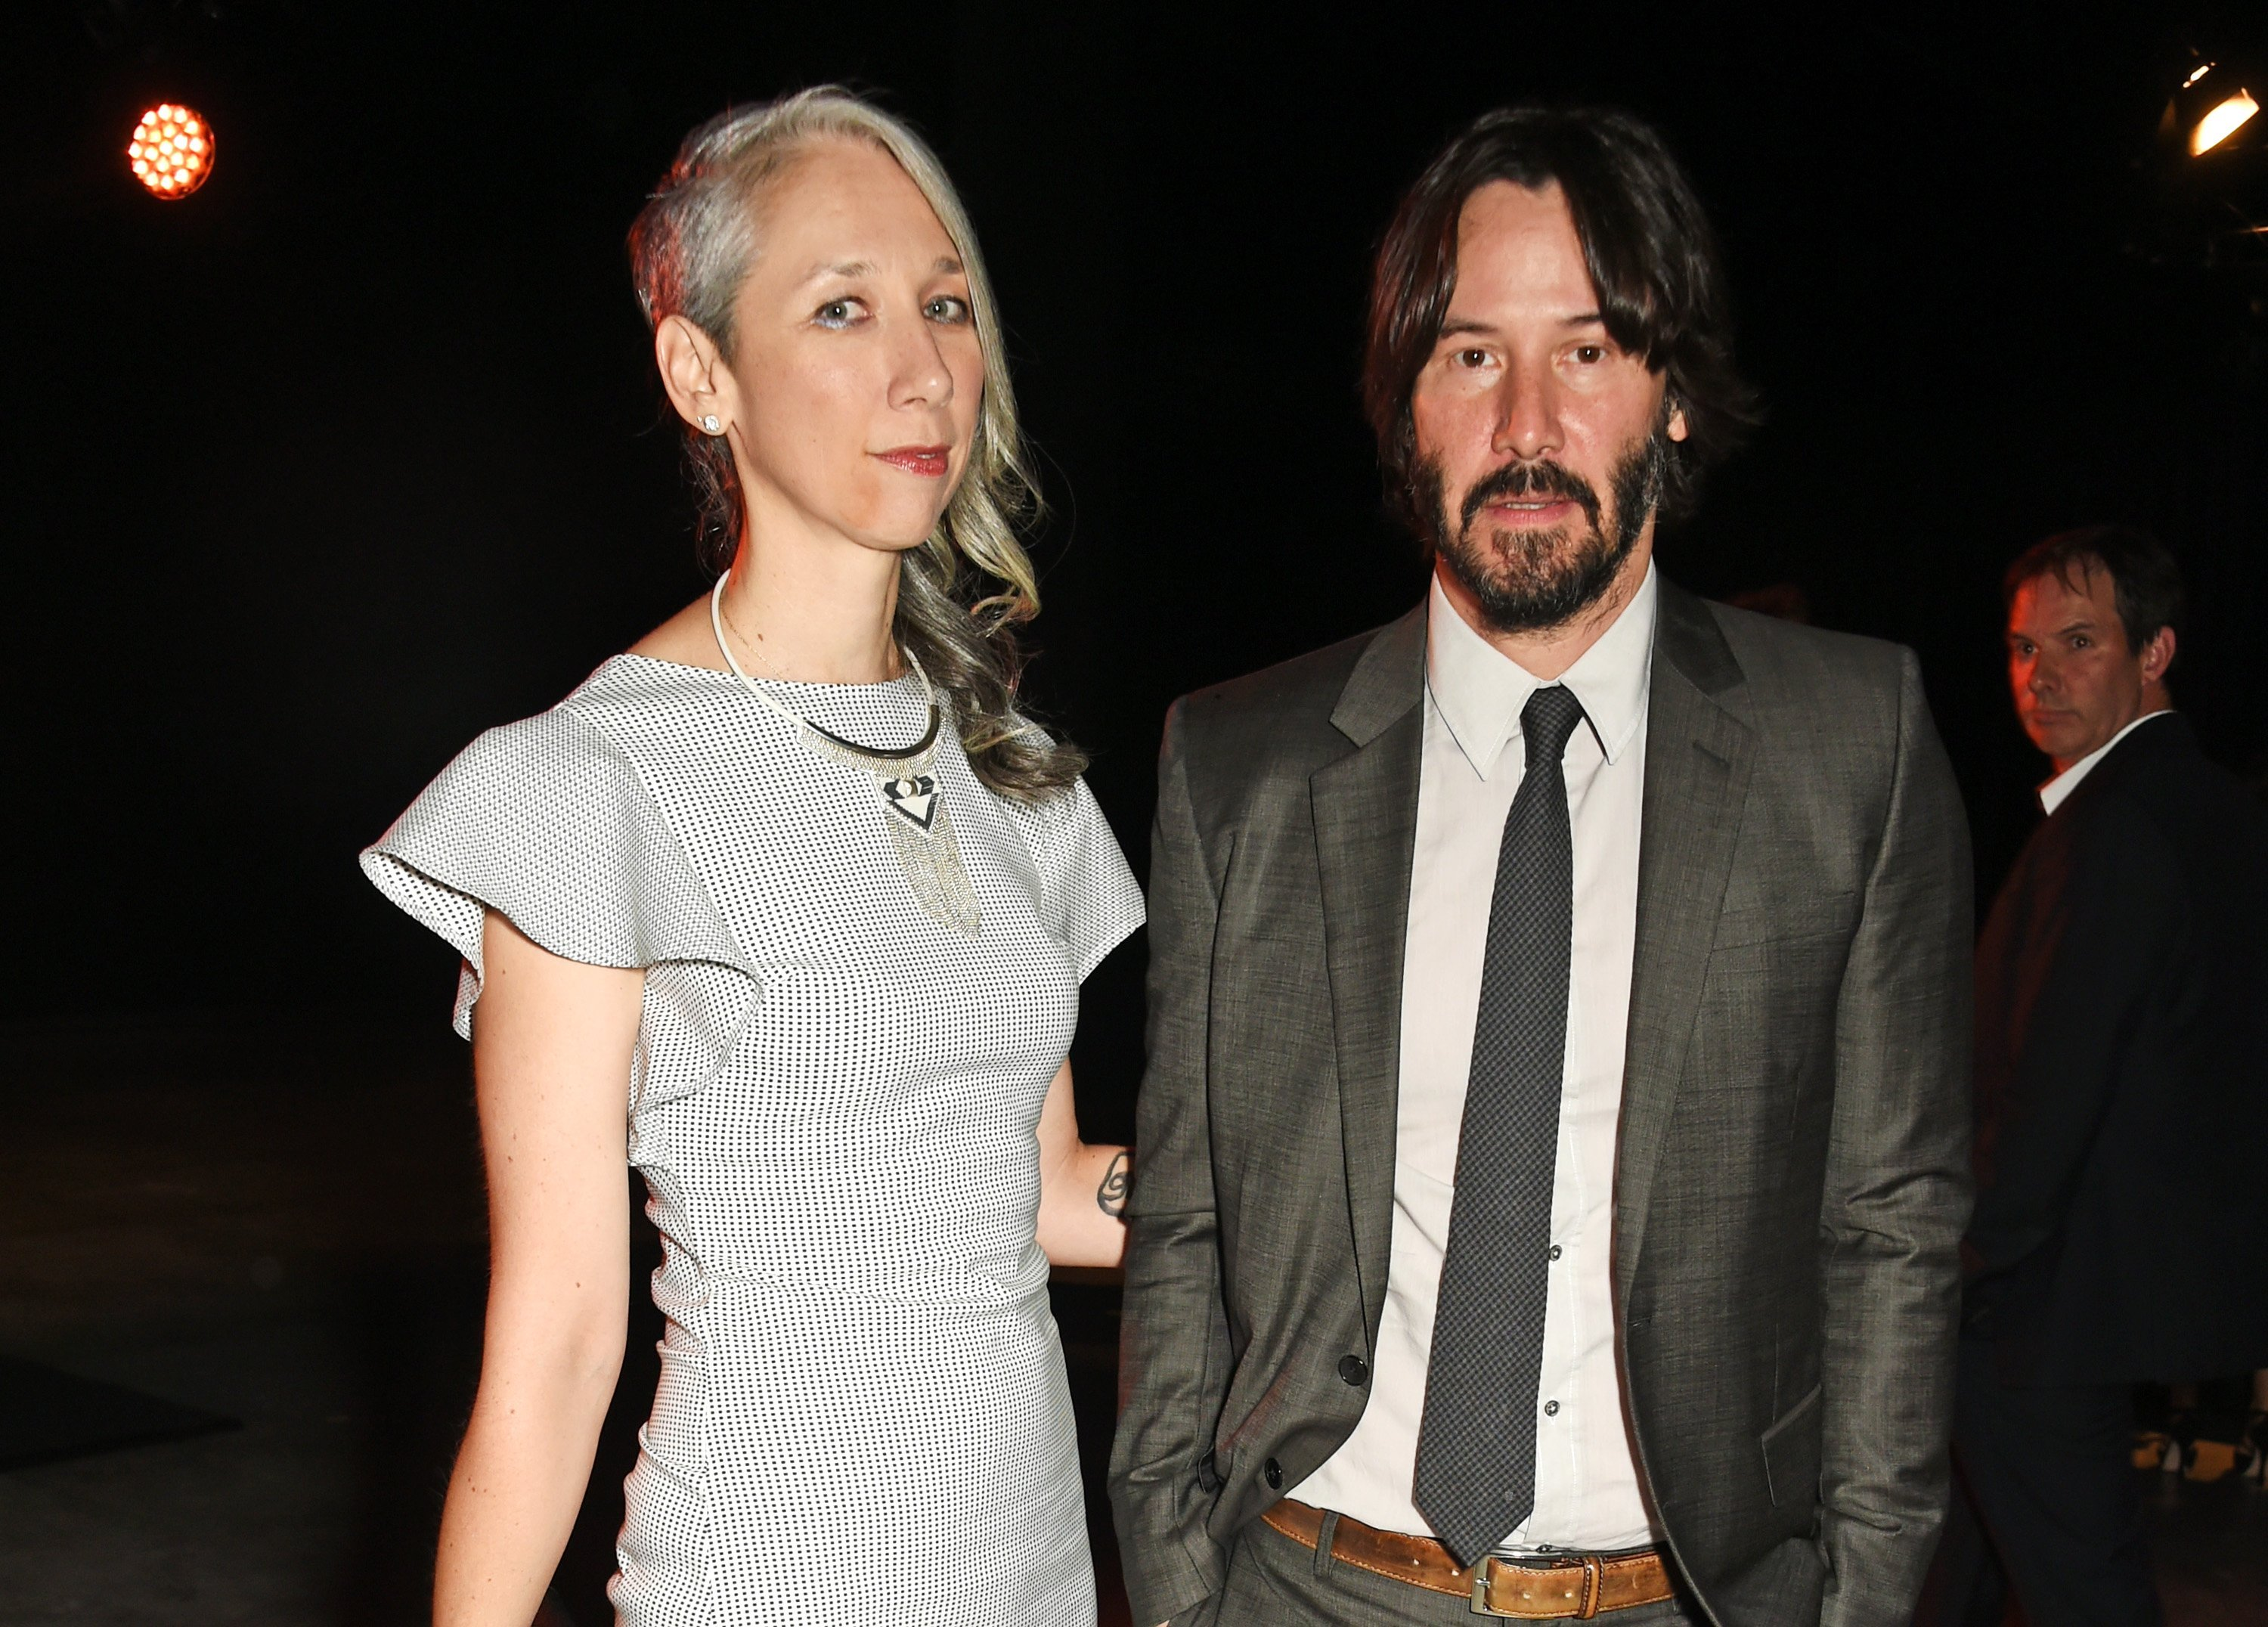 Keanu Reeves and rumoured girlfriend, artist Alexandra Grant at the UNAIDS Gala during Art Basel 2016 in Basel, Switzerland. | Photo: Getty Images